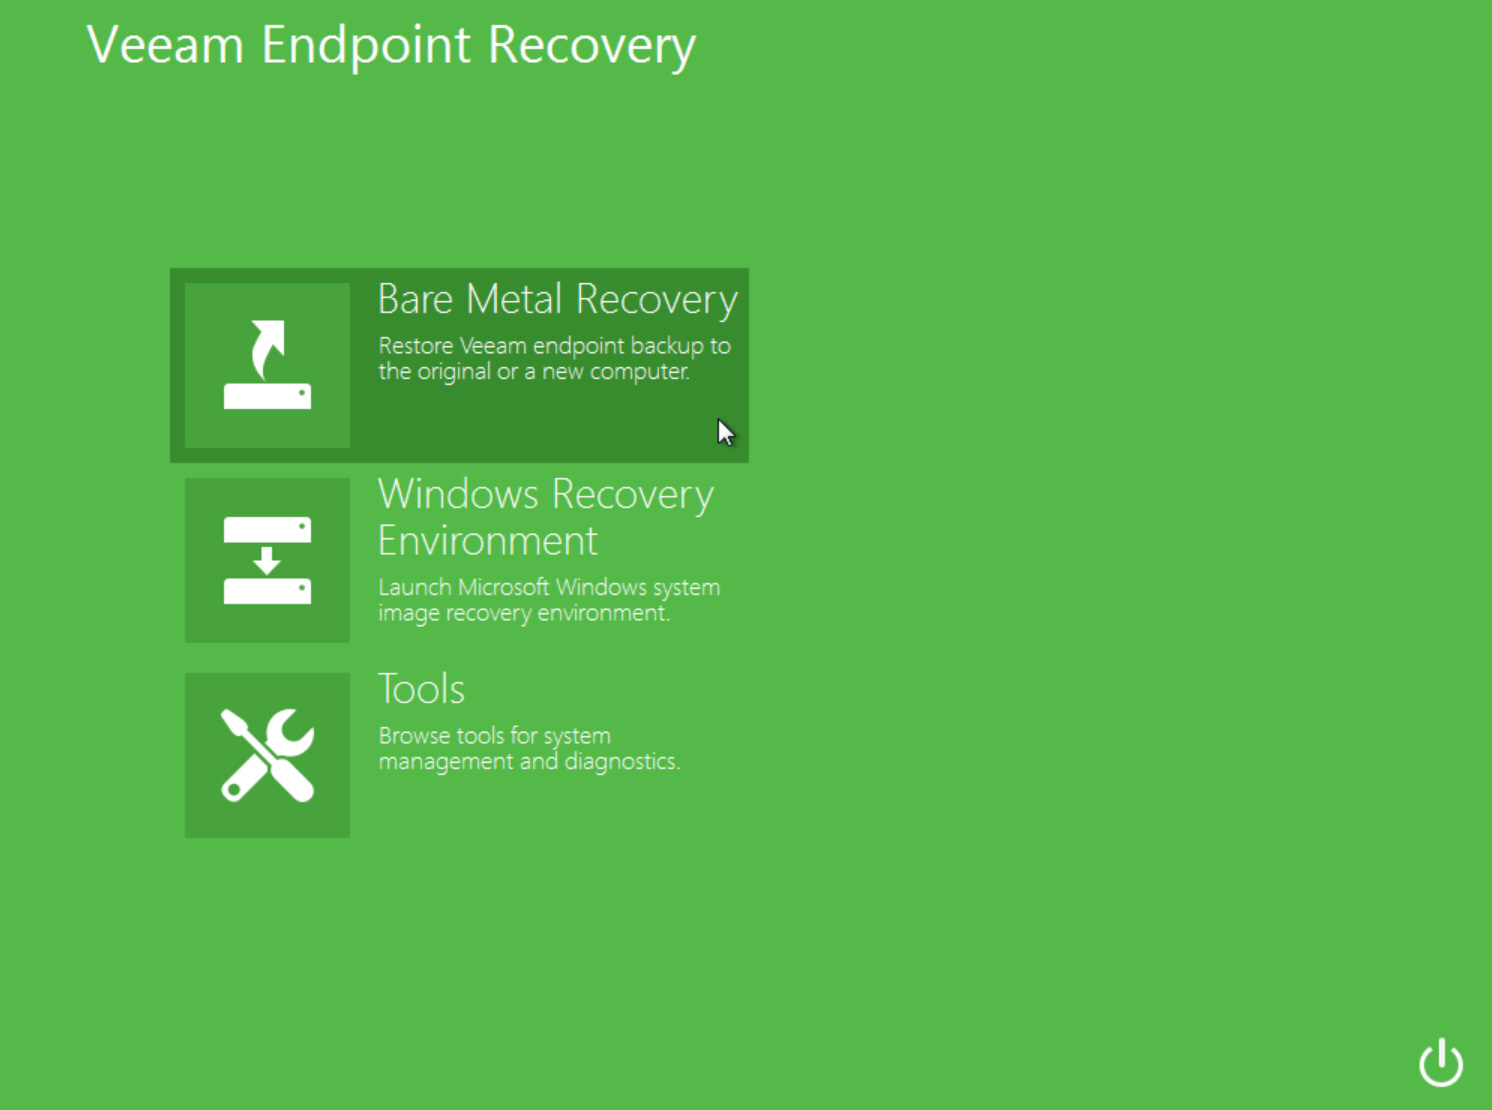 veeam endpoint